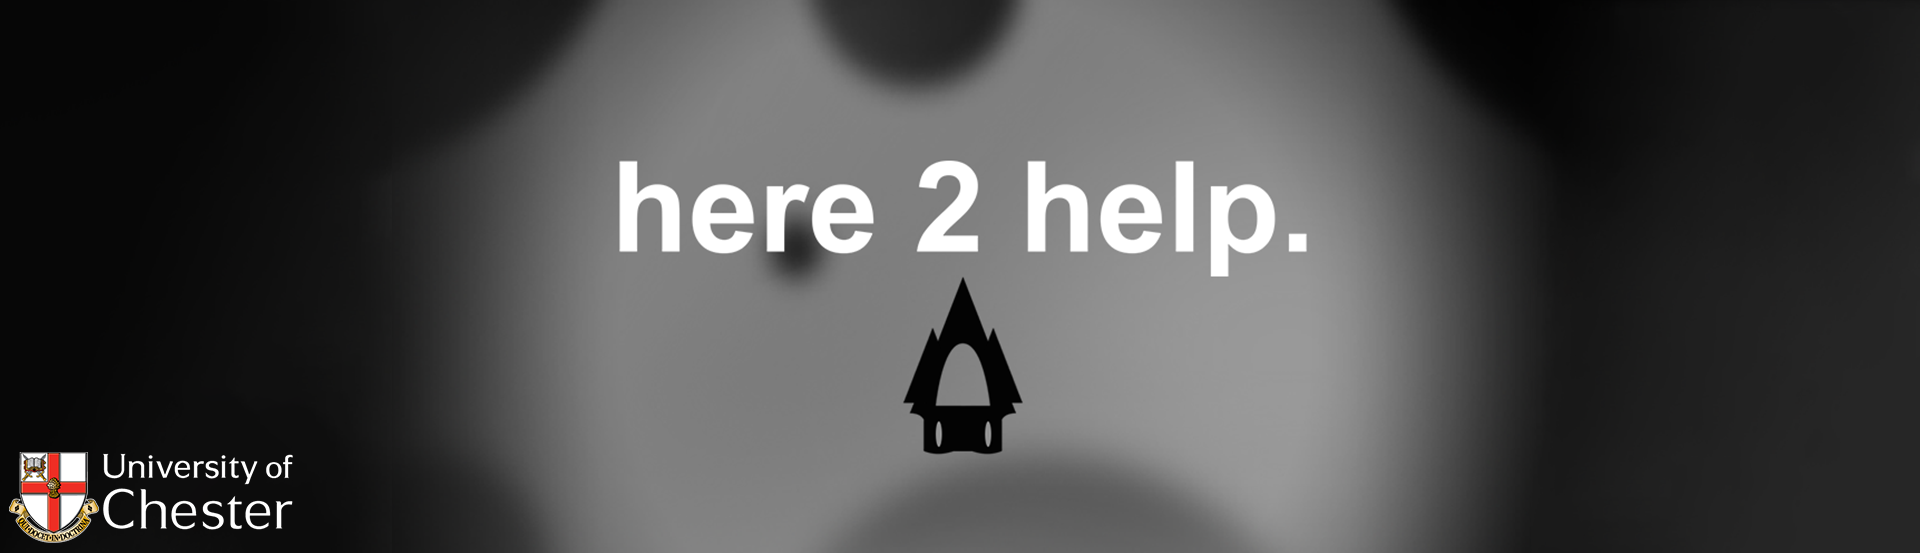 here 2 help. mobile